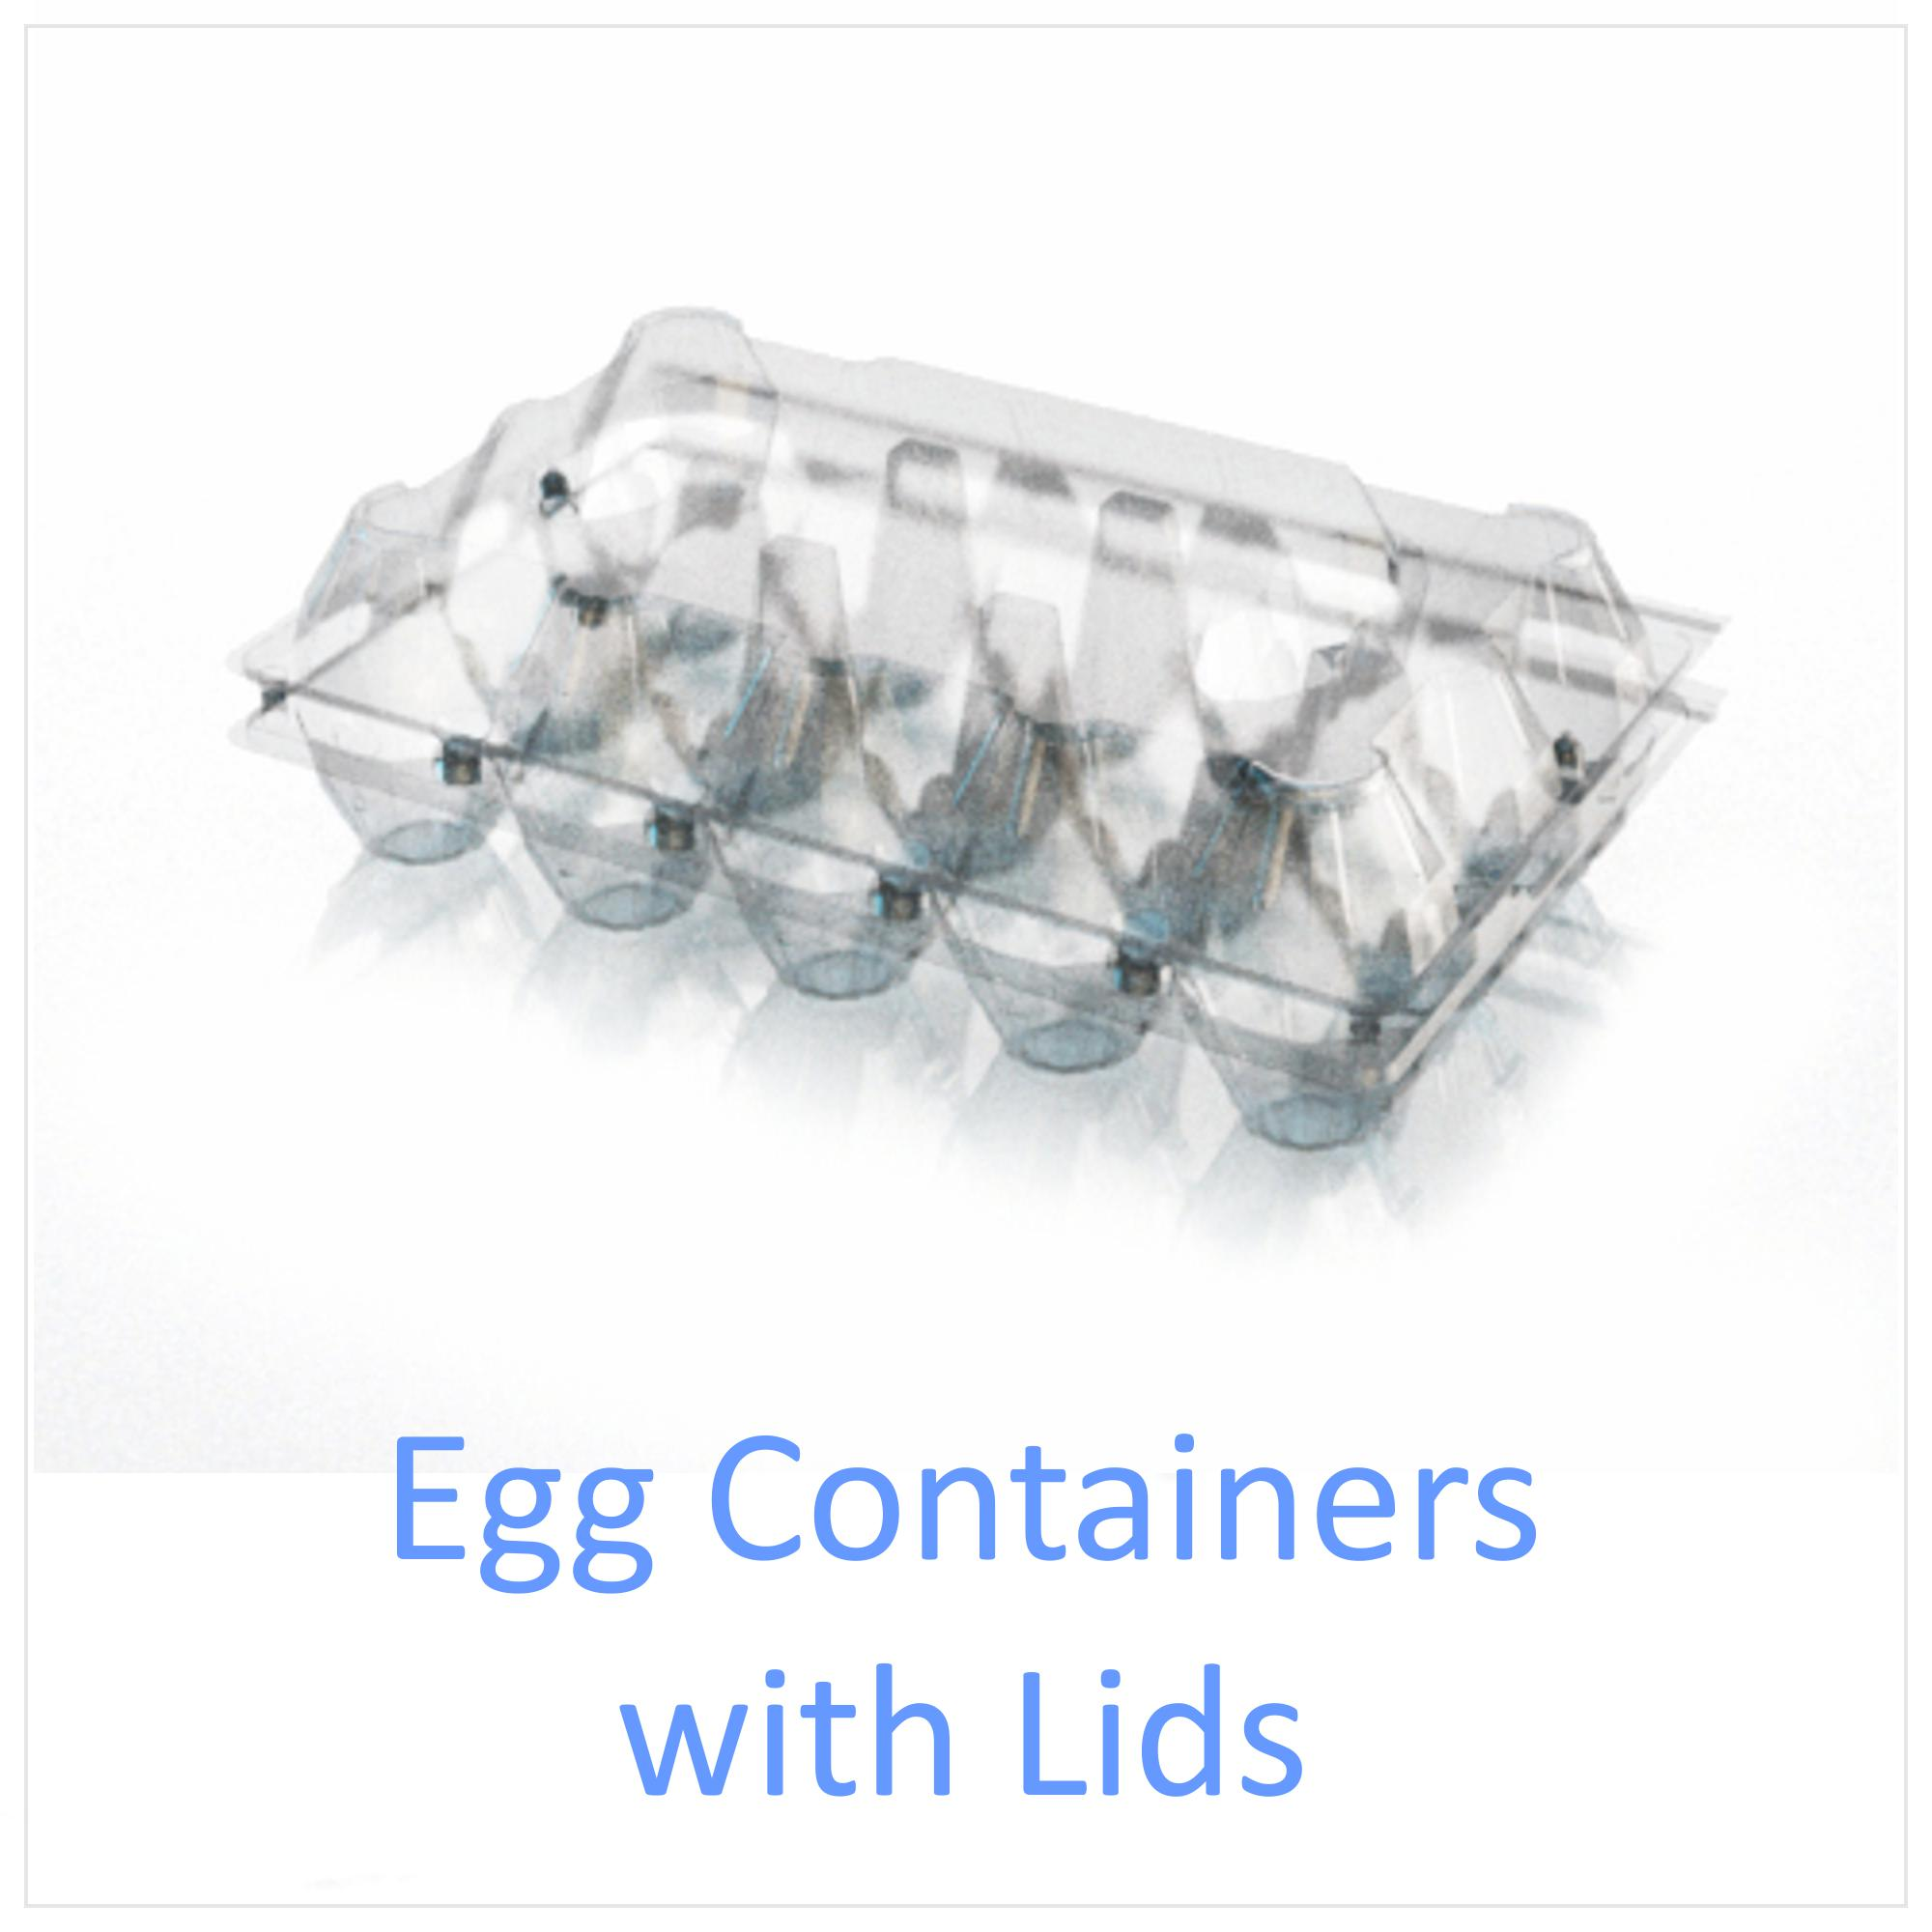 Egg Containers with Lids